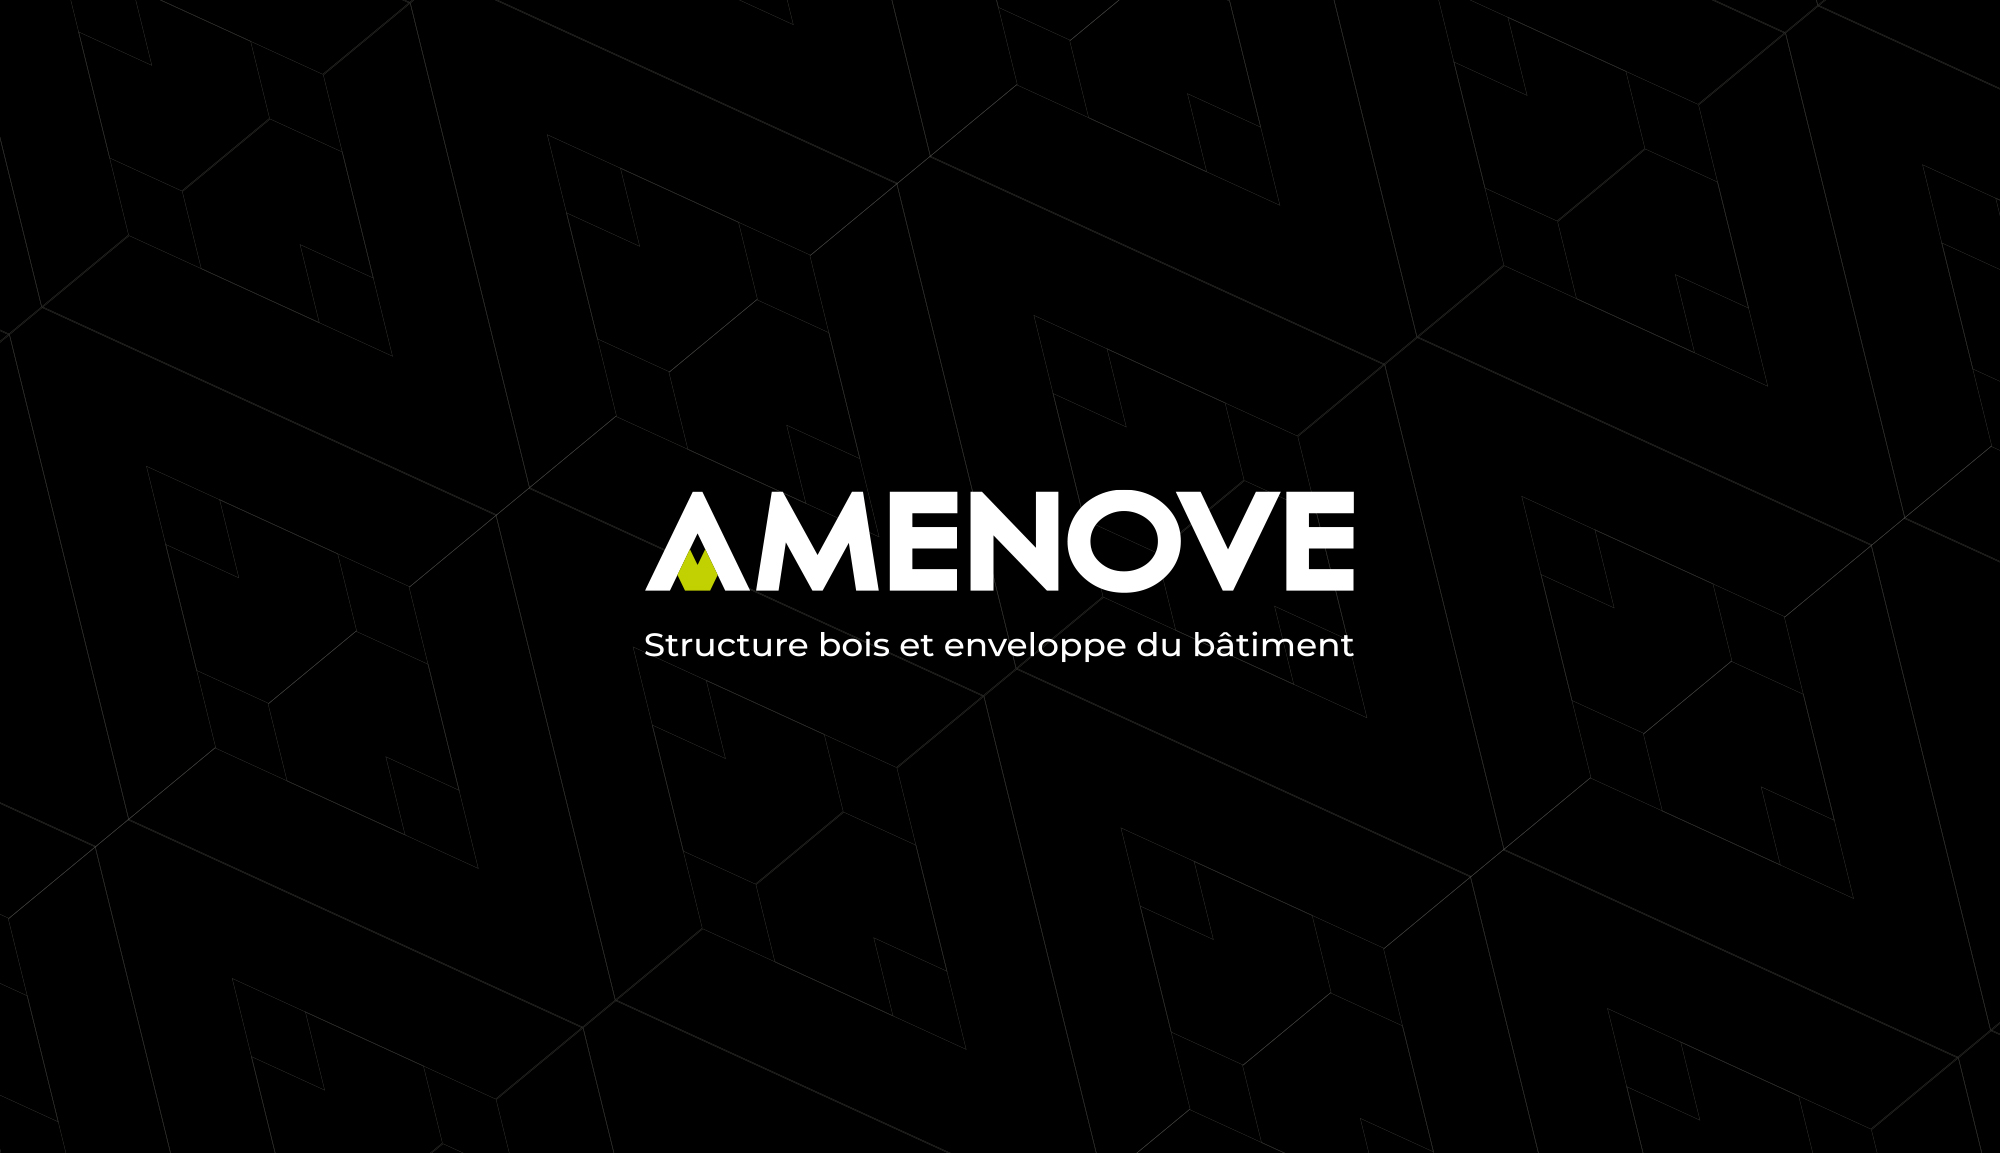 Amenove - Graphic Design - Graphiste Freelance Lille